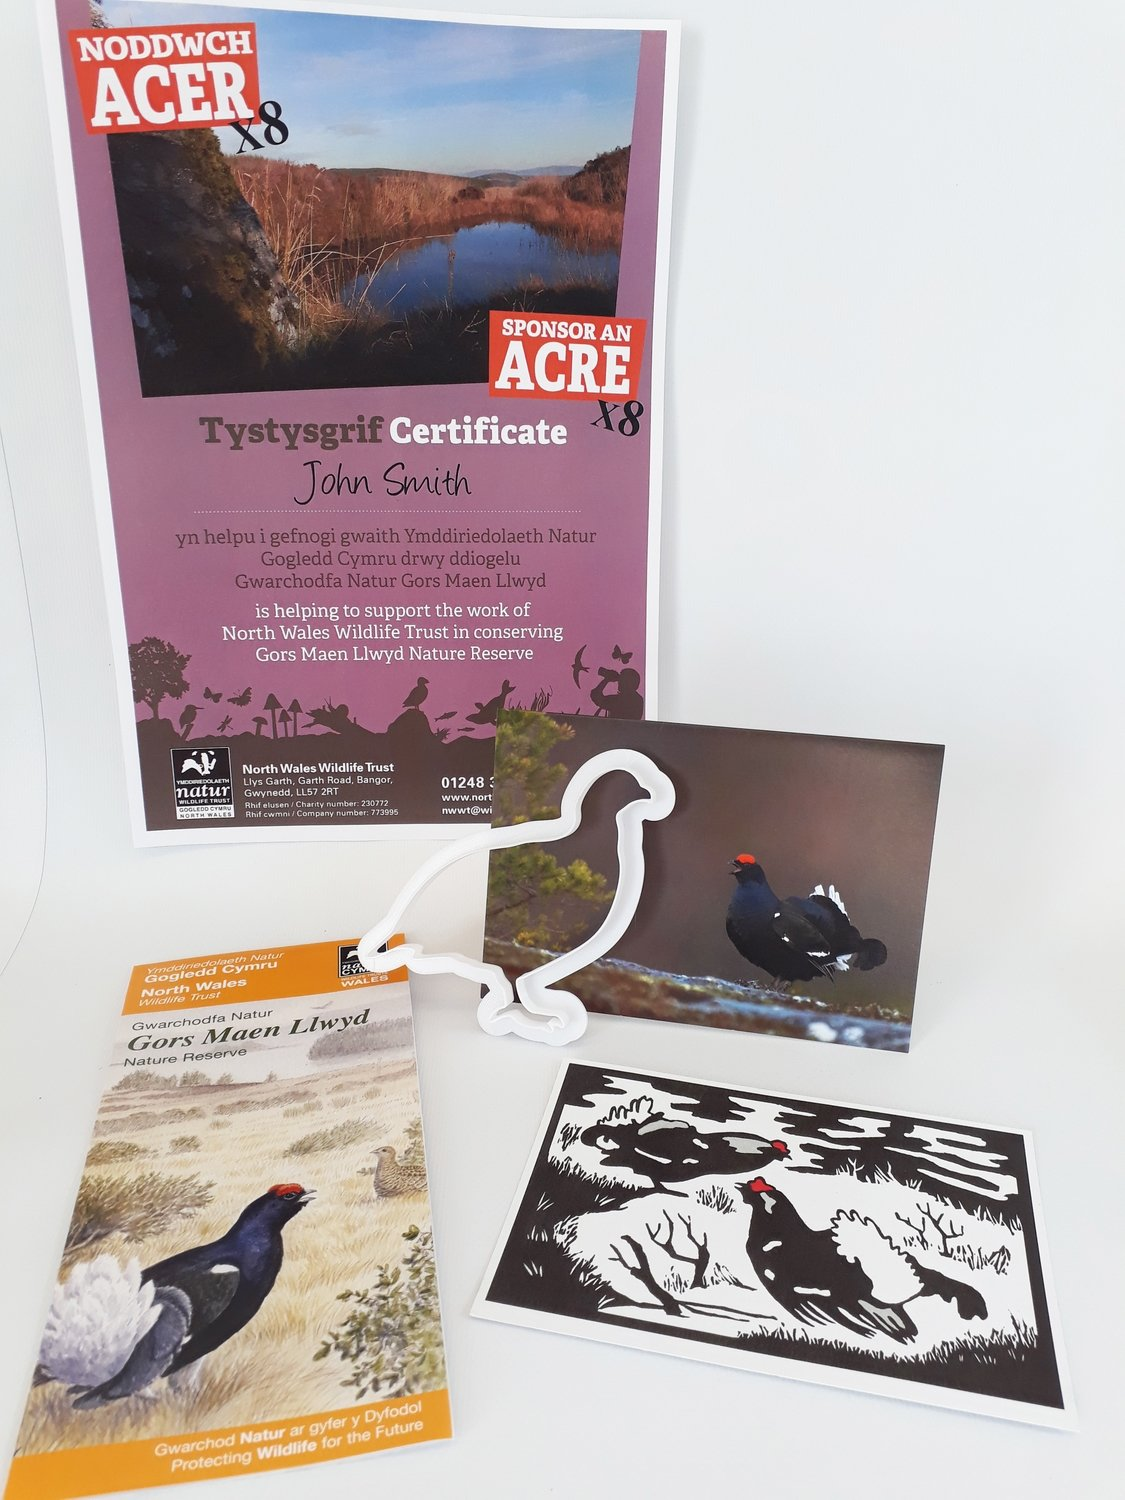 Sponsor an Acre of Gors Maen Llwyd Nature Reserve